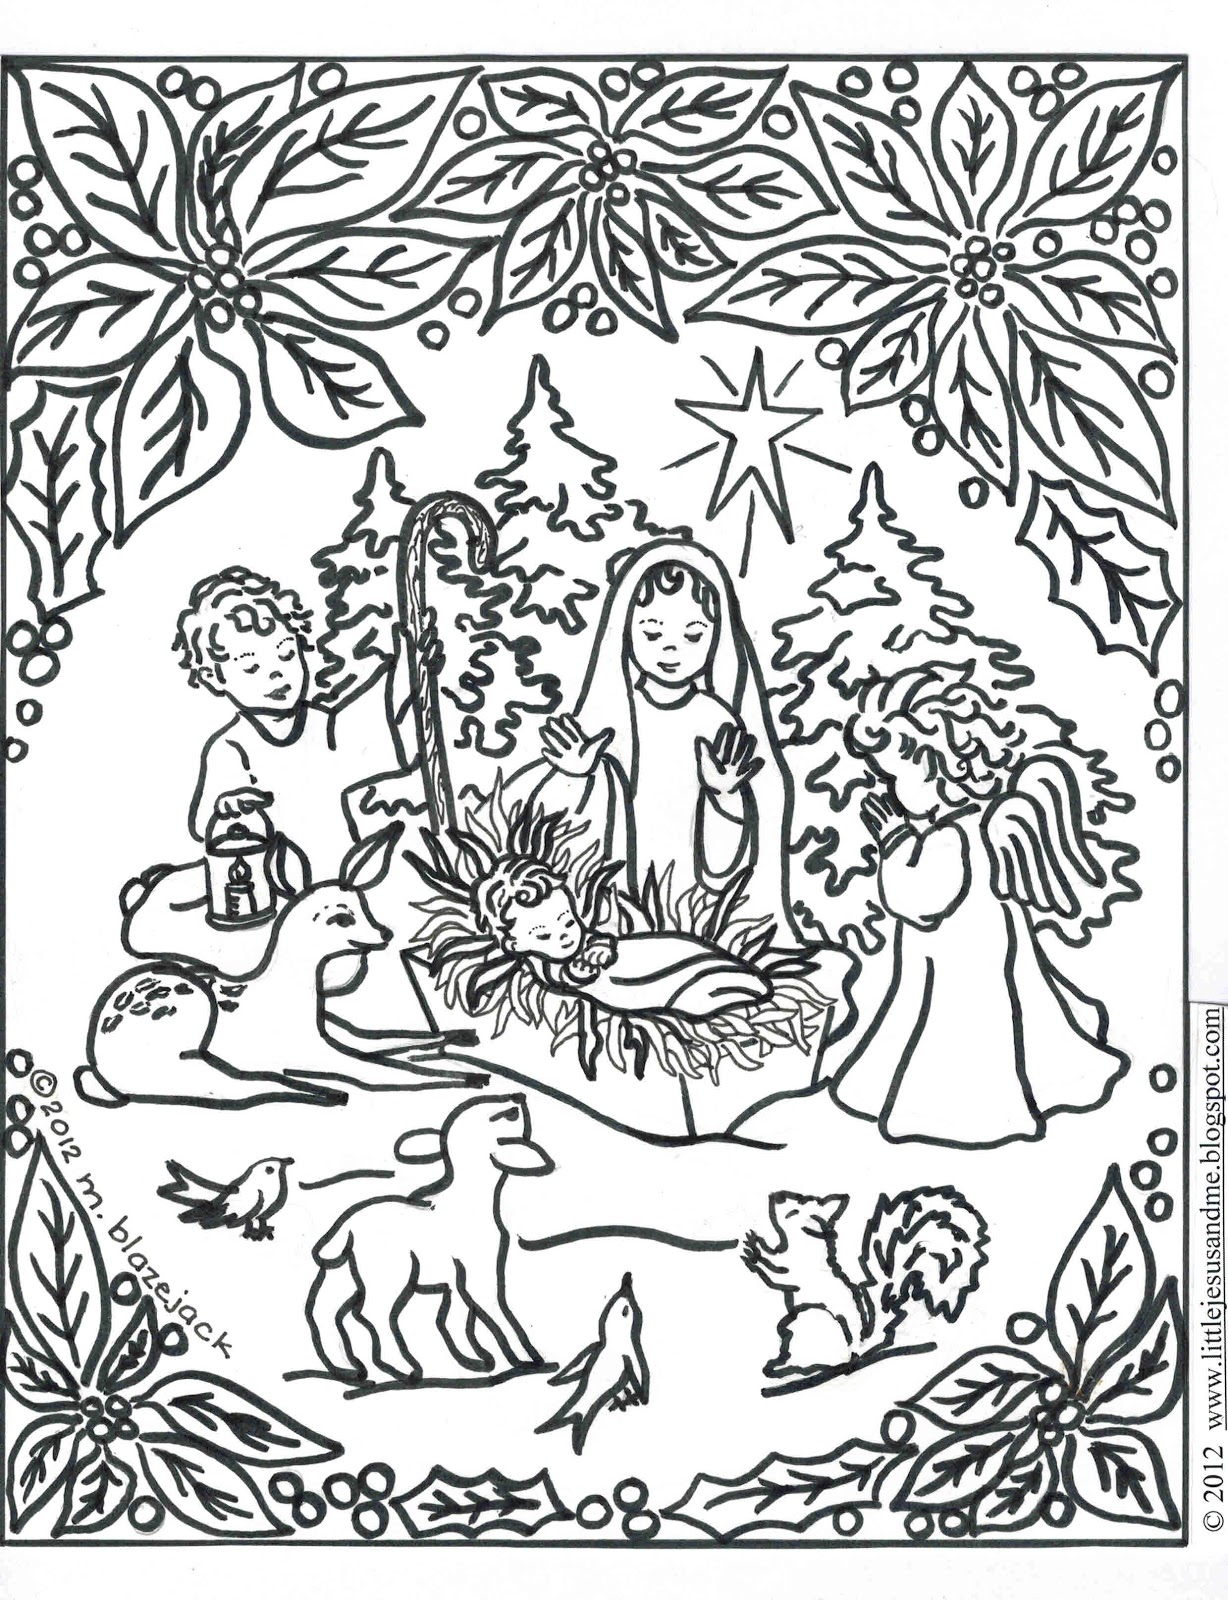 Christmas Animals Coloring Pages Printable With Runninggames Me At